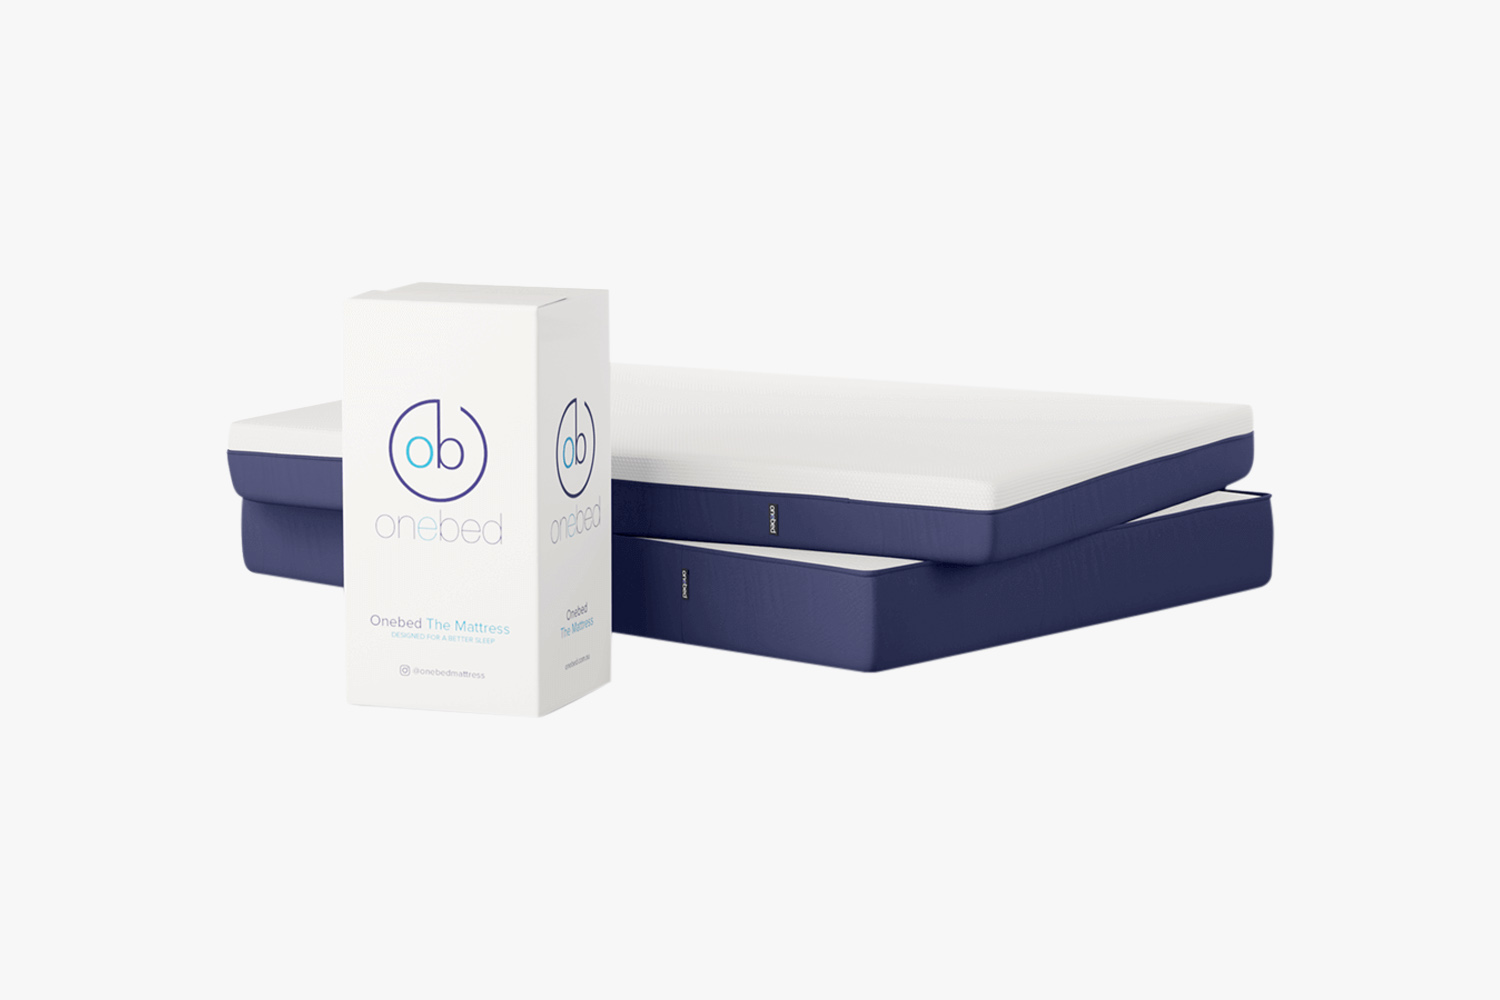 Onebed mattress in a box